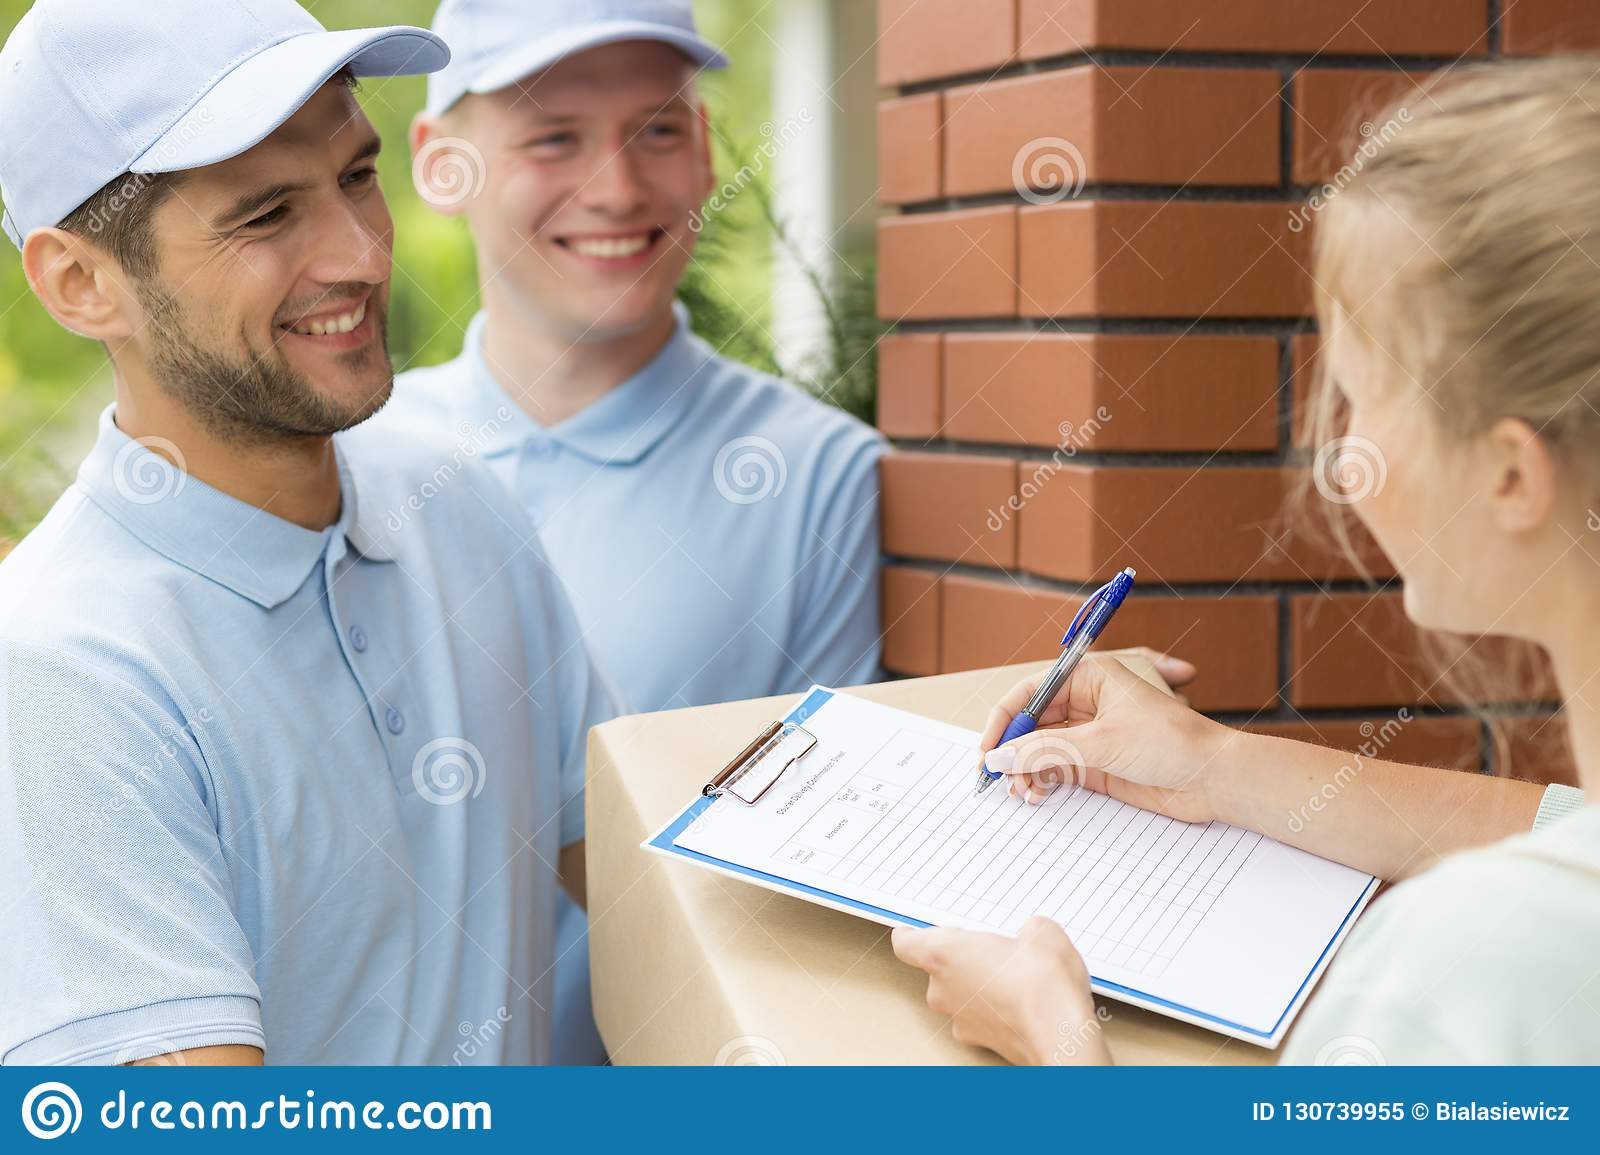 Friendly couriers in blue uniforms and woman signing receipt of package delivery